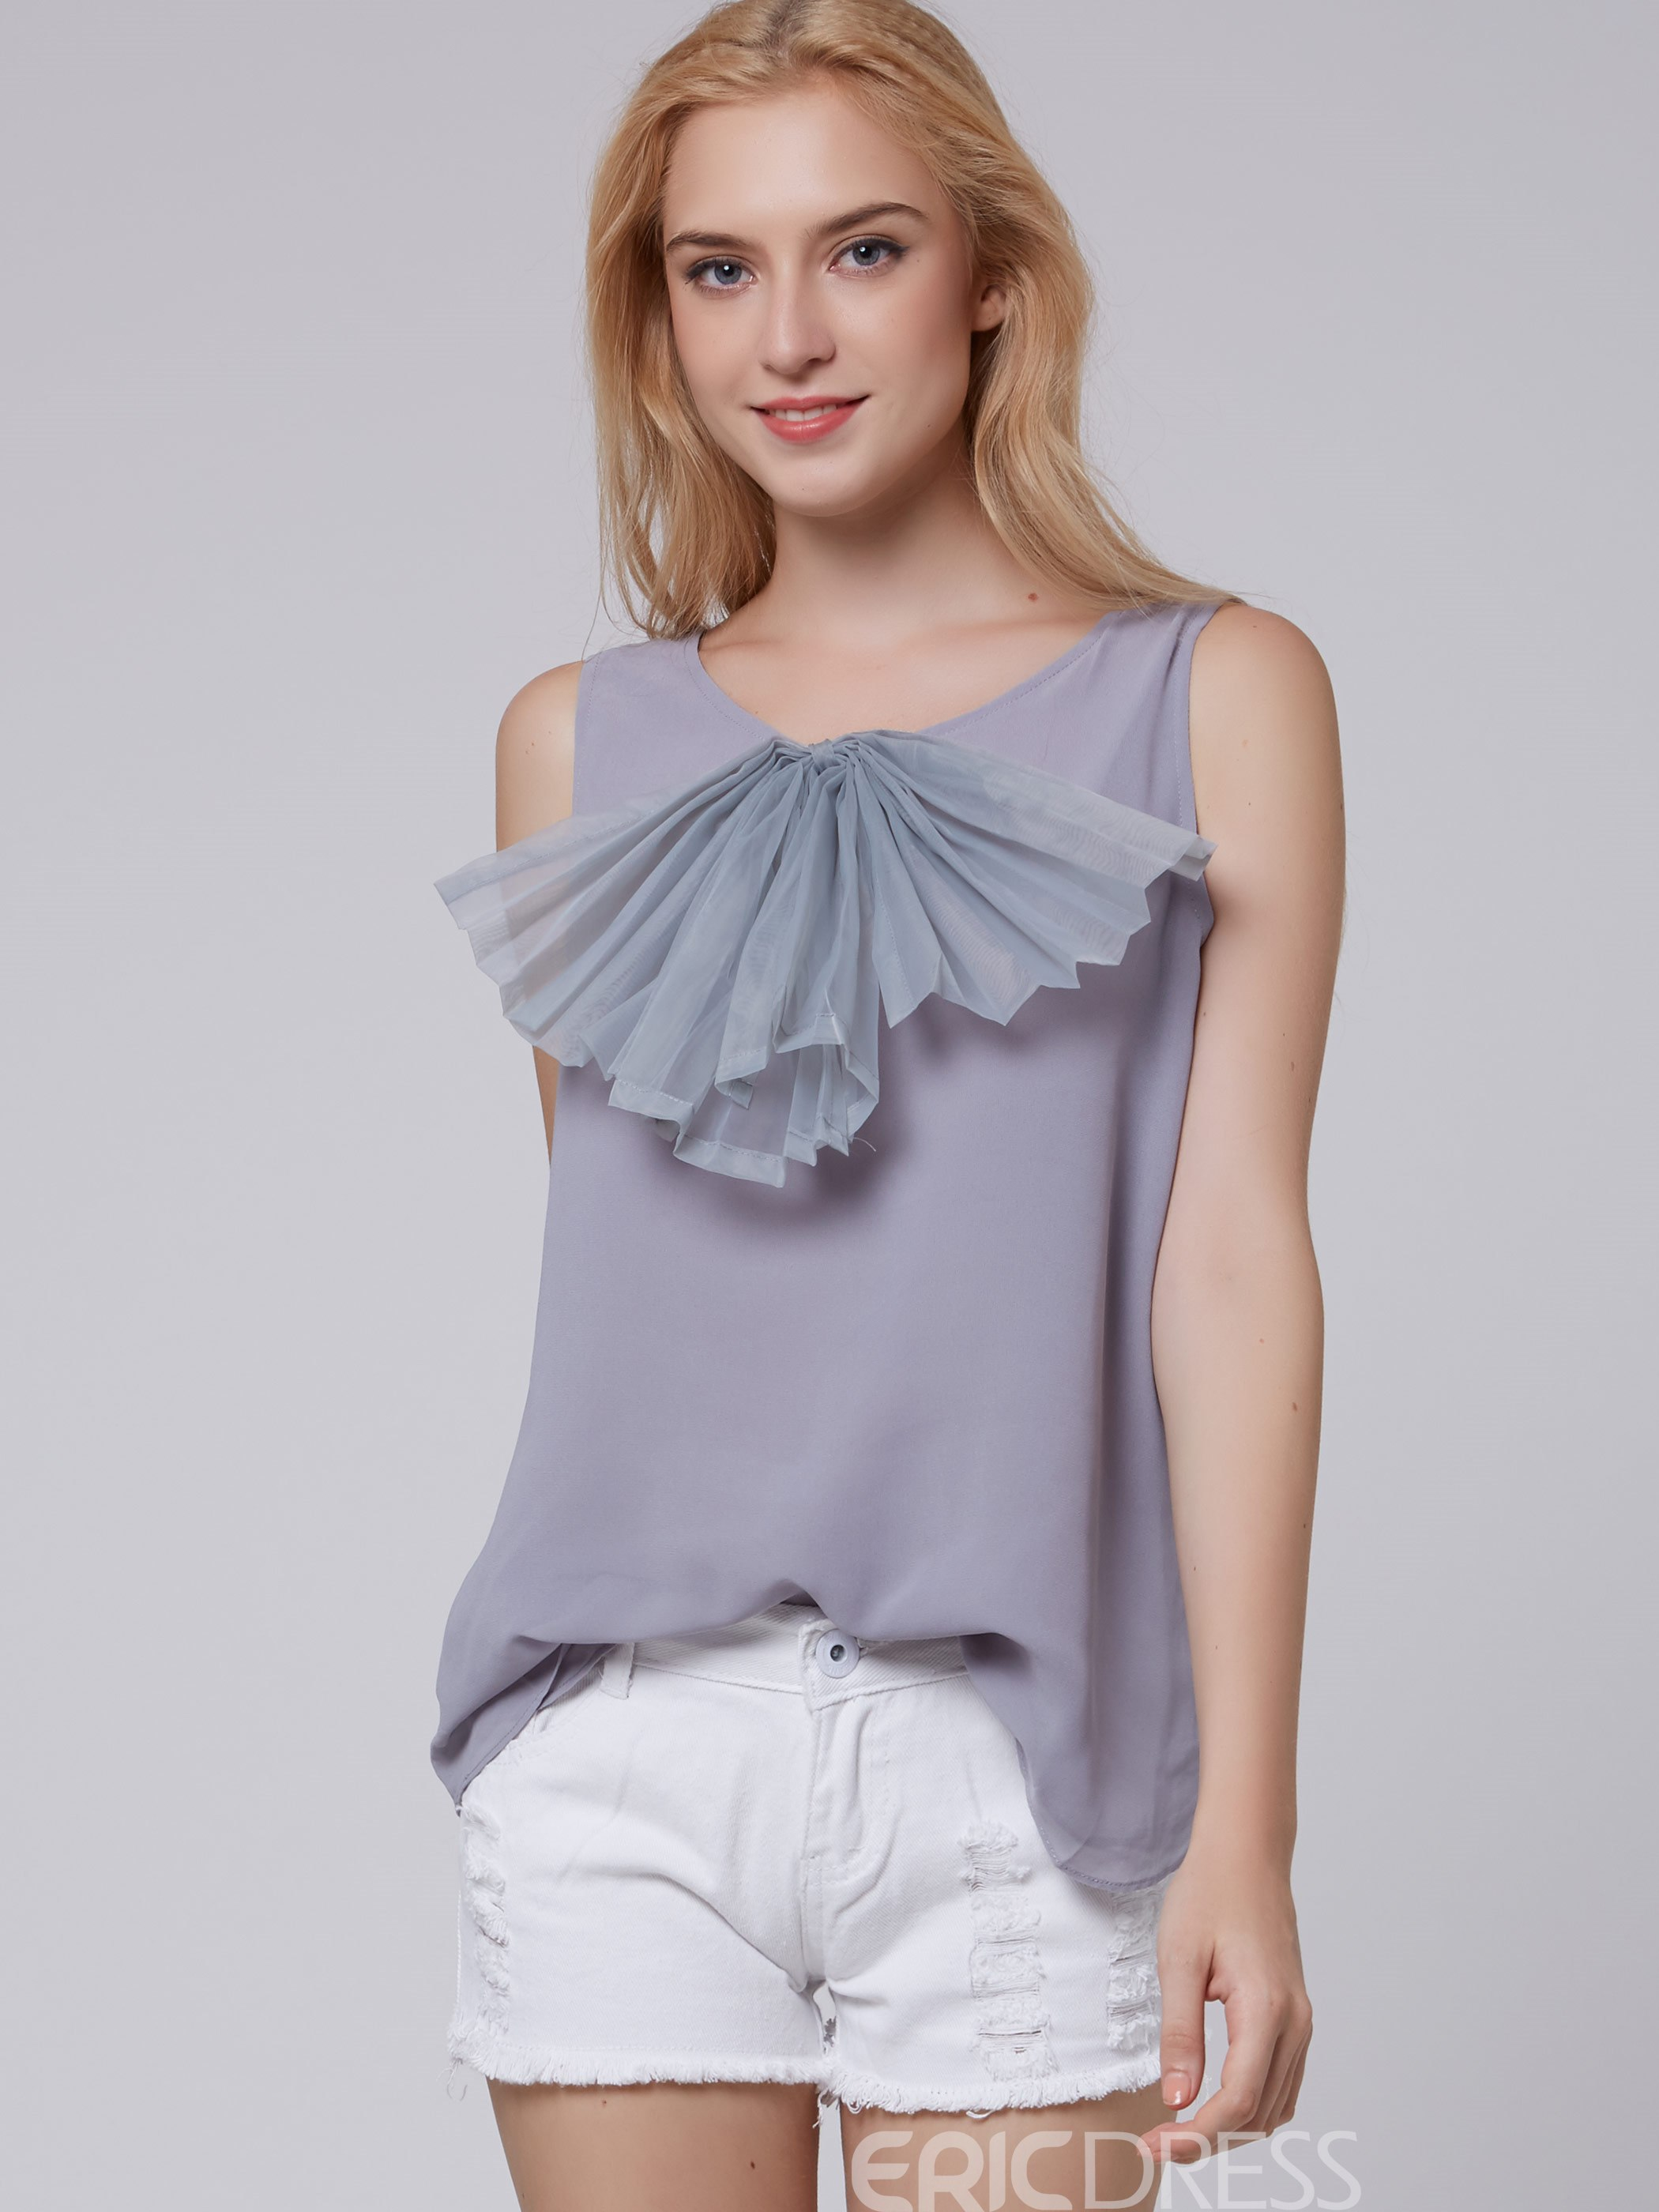 Ericdress Gray Applique Sleeveless Chiffon Blouse